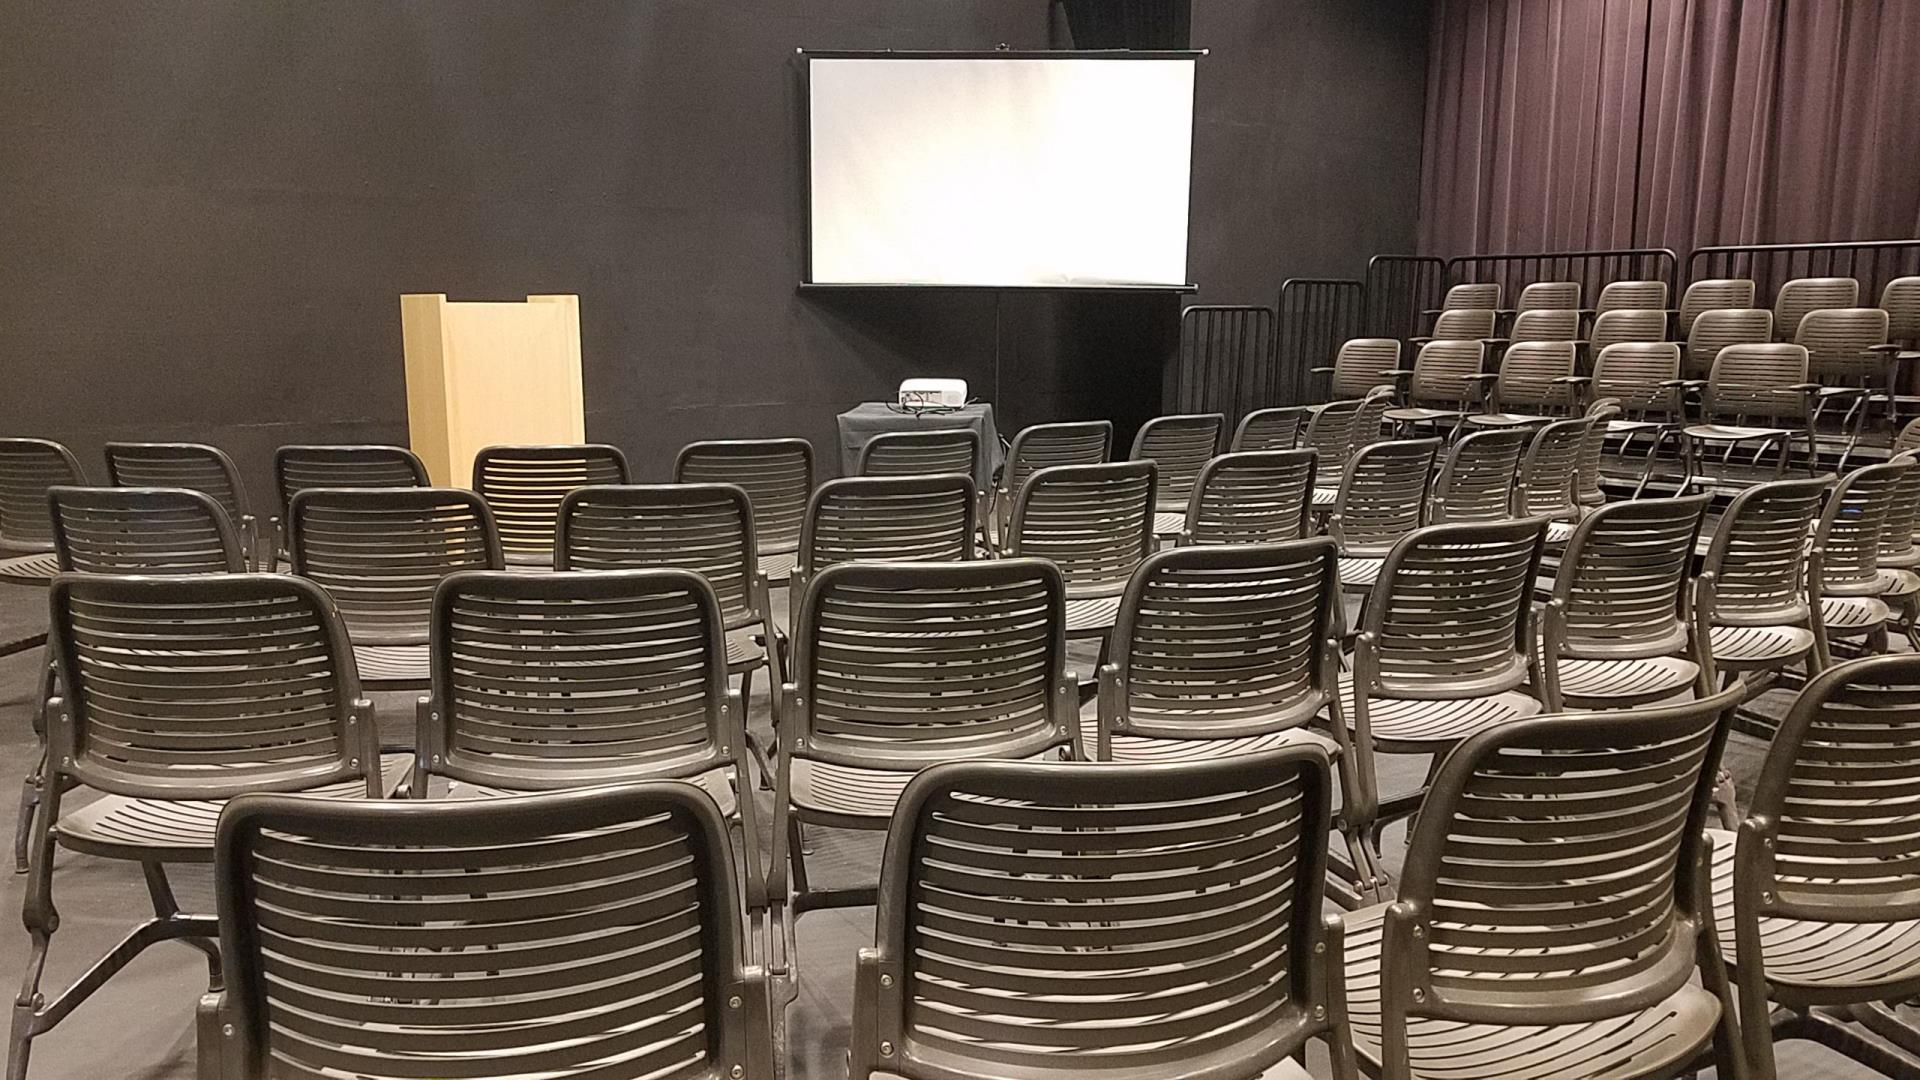 Lecture setup with small screen in theater